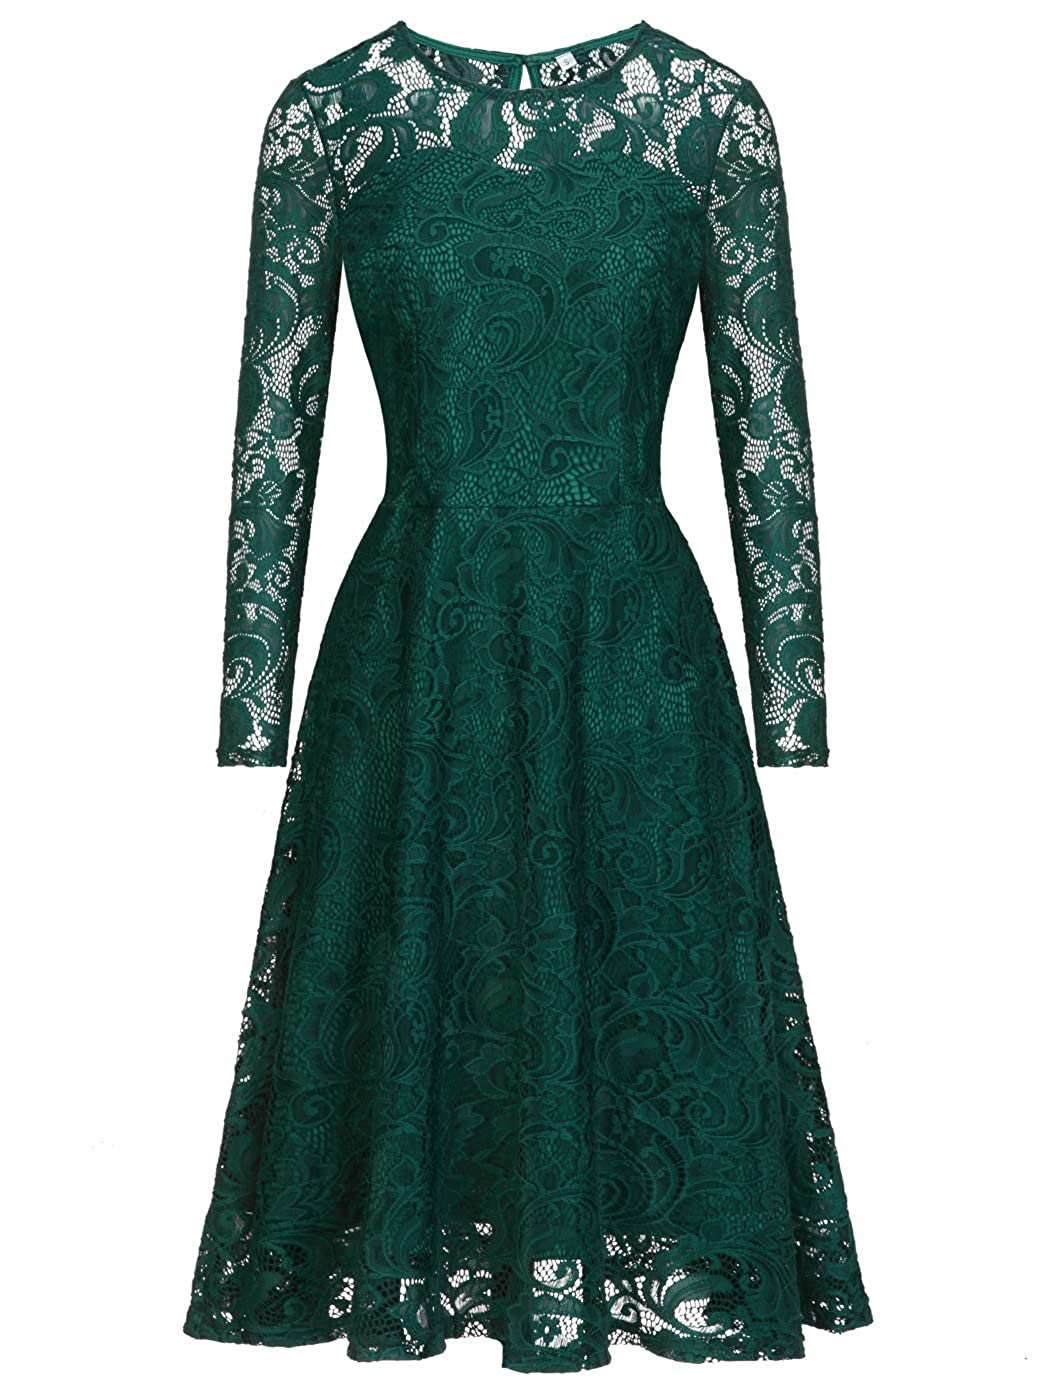 031green FAIRY COUPLE Short Vintage Floral Juniors Lace Dress with Long Sleeve for Party Wedding Cocktail